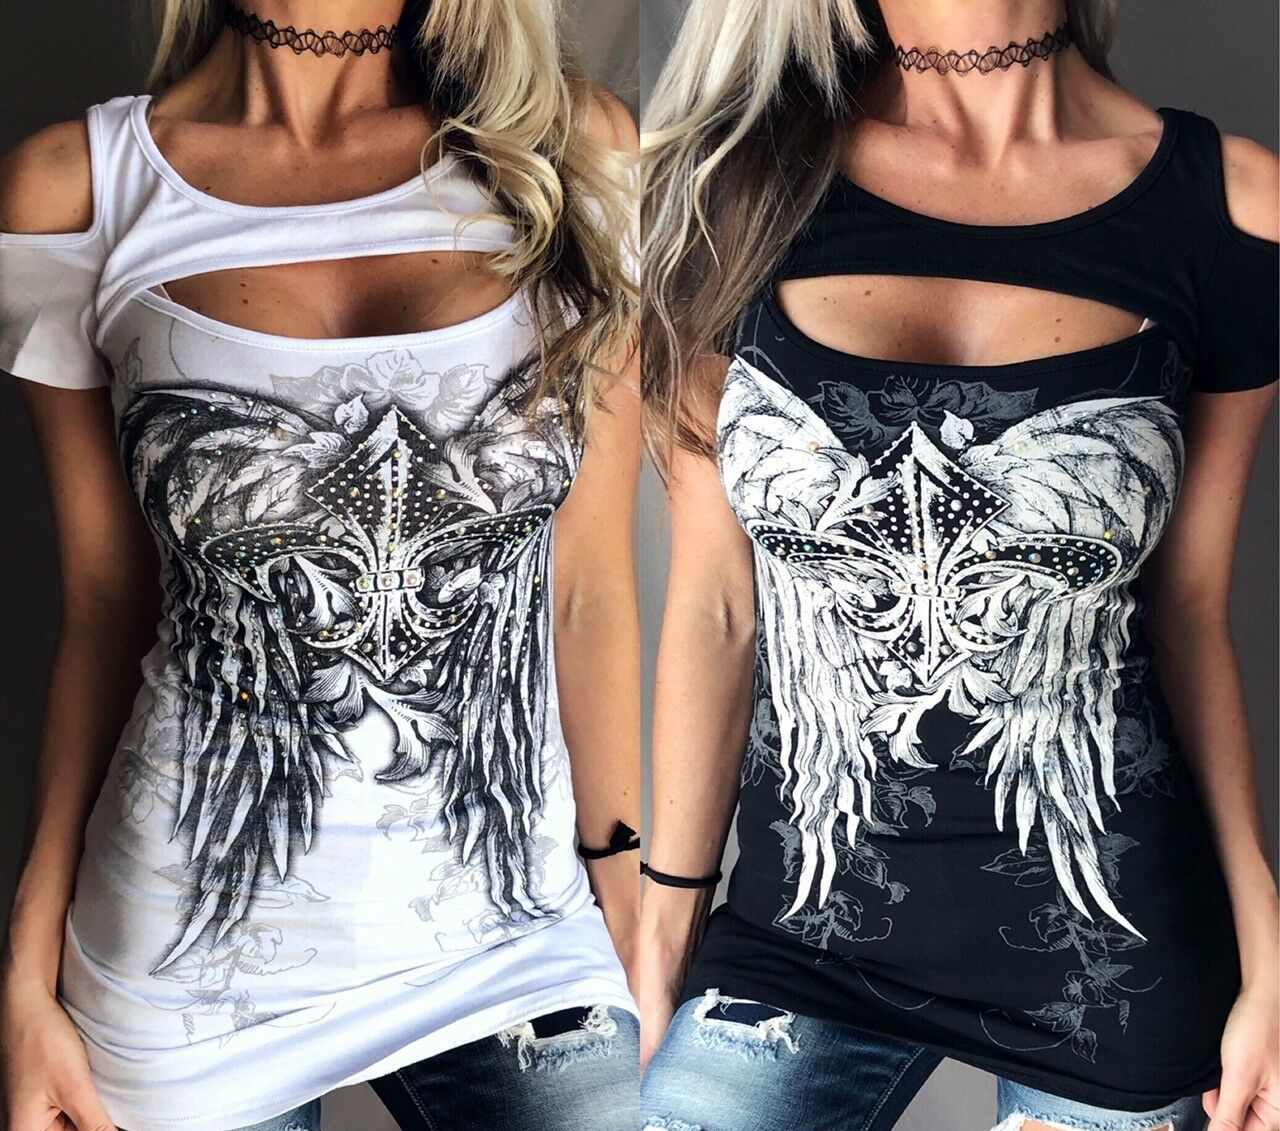 Bling Rhinestone Cross Fleur De Lis Wings Peekaboo Open Cold Shoulder New Top Gorgeous Wing  bling Sexy Biker short sleeve shirt comes in other colours Shredded sleeves